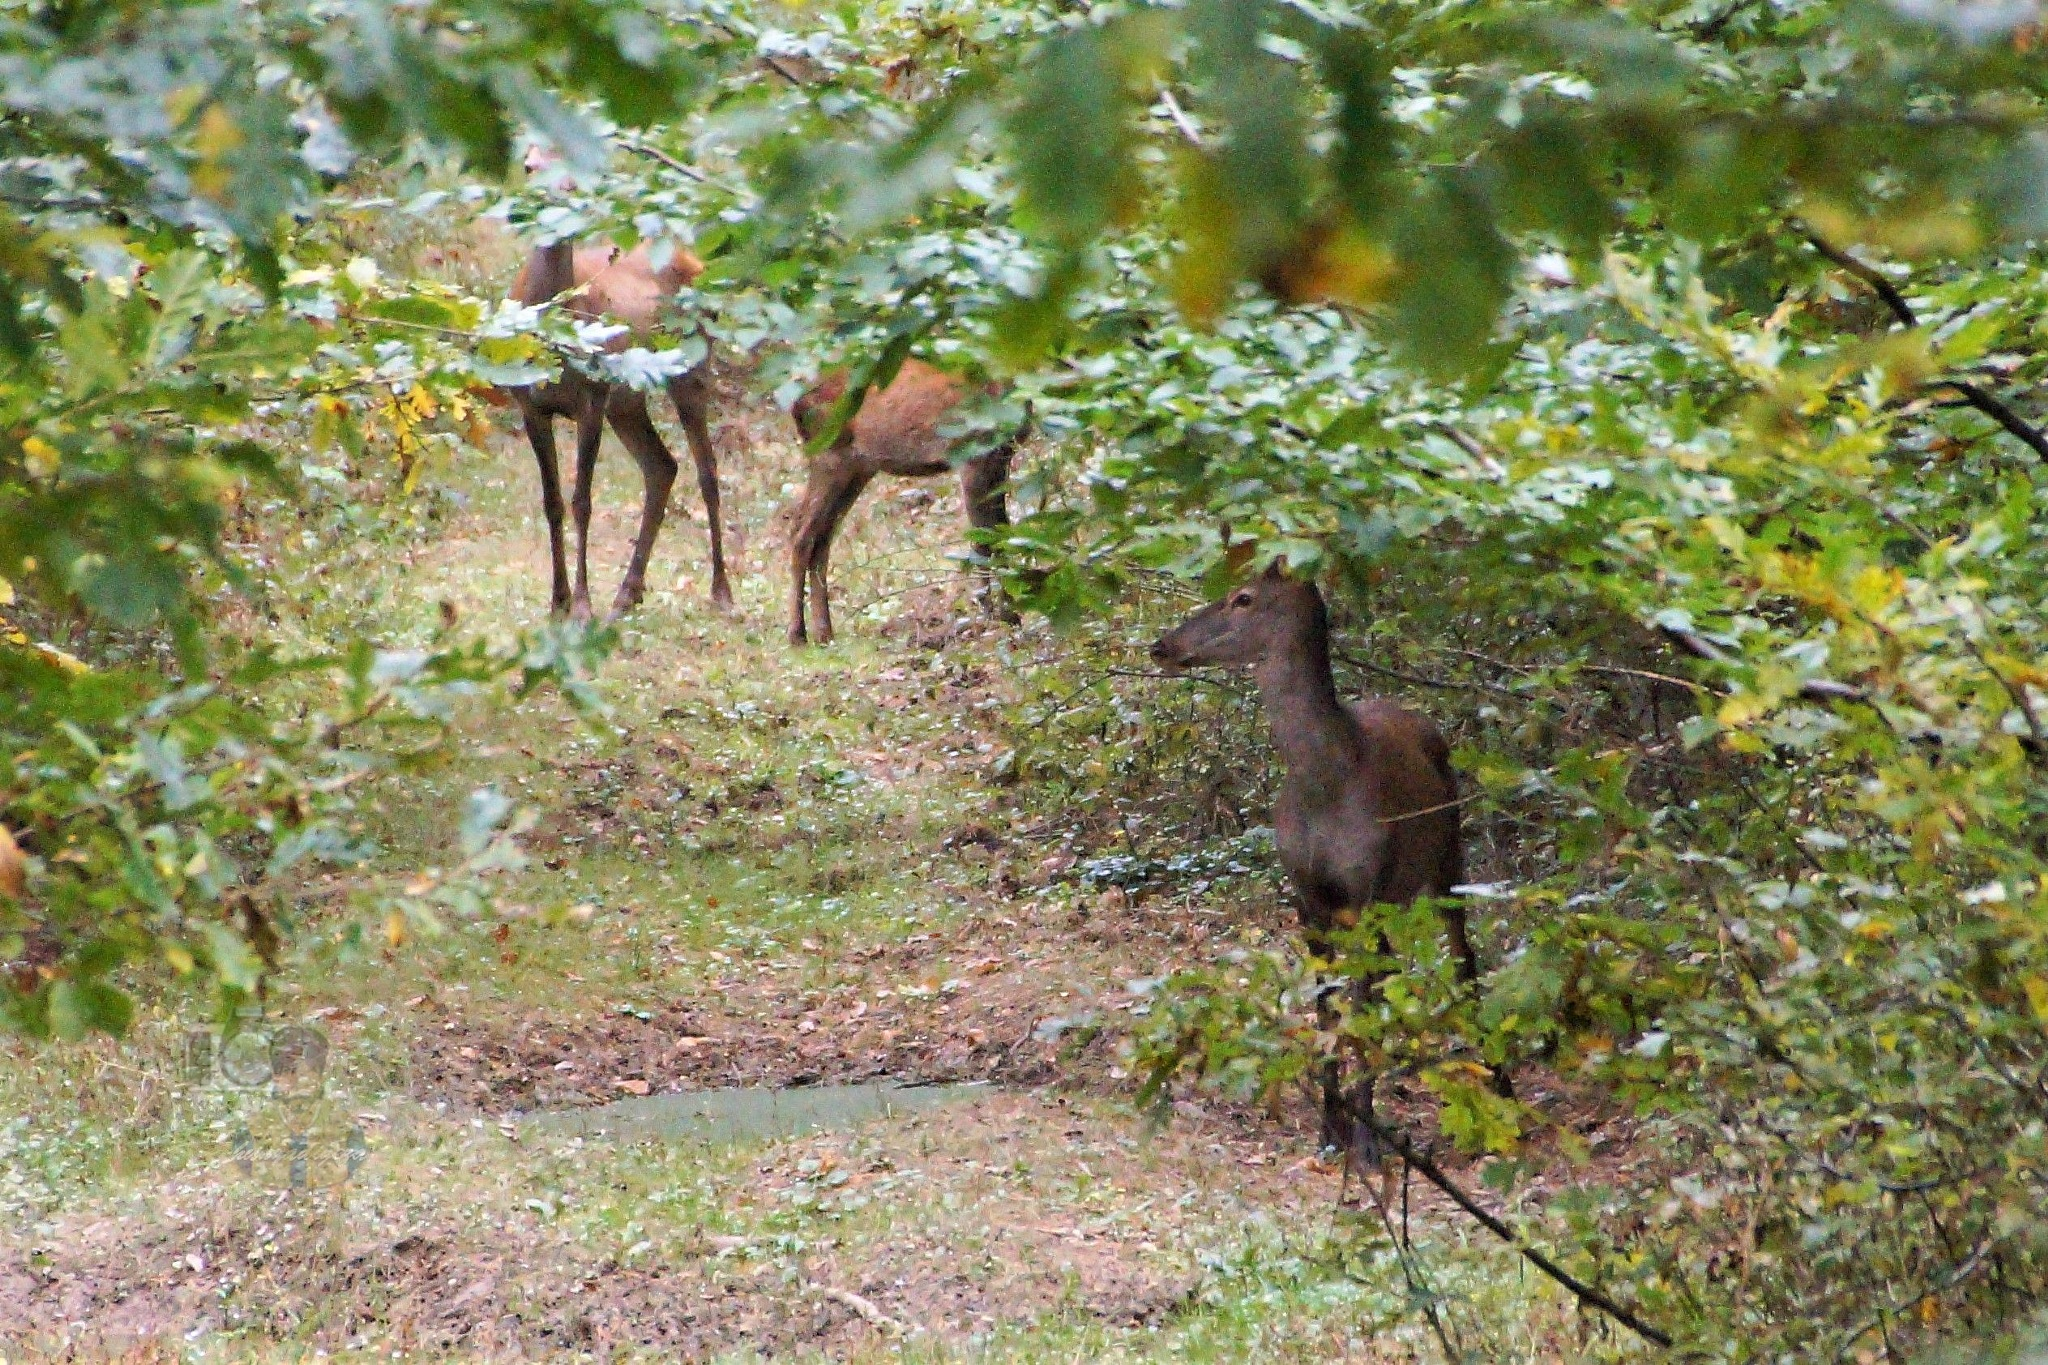 Oct.10, three red deer in forest by hunyadigeza